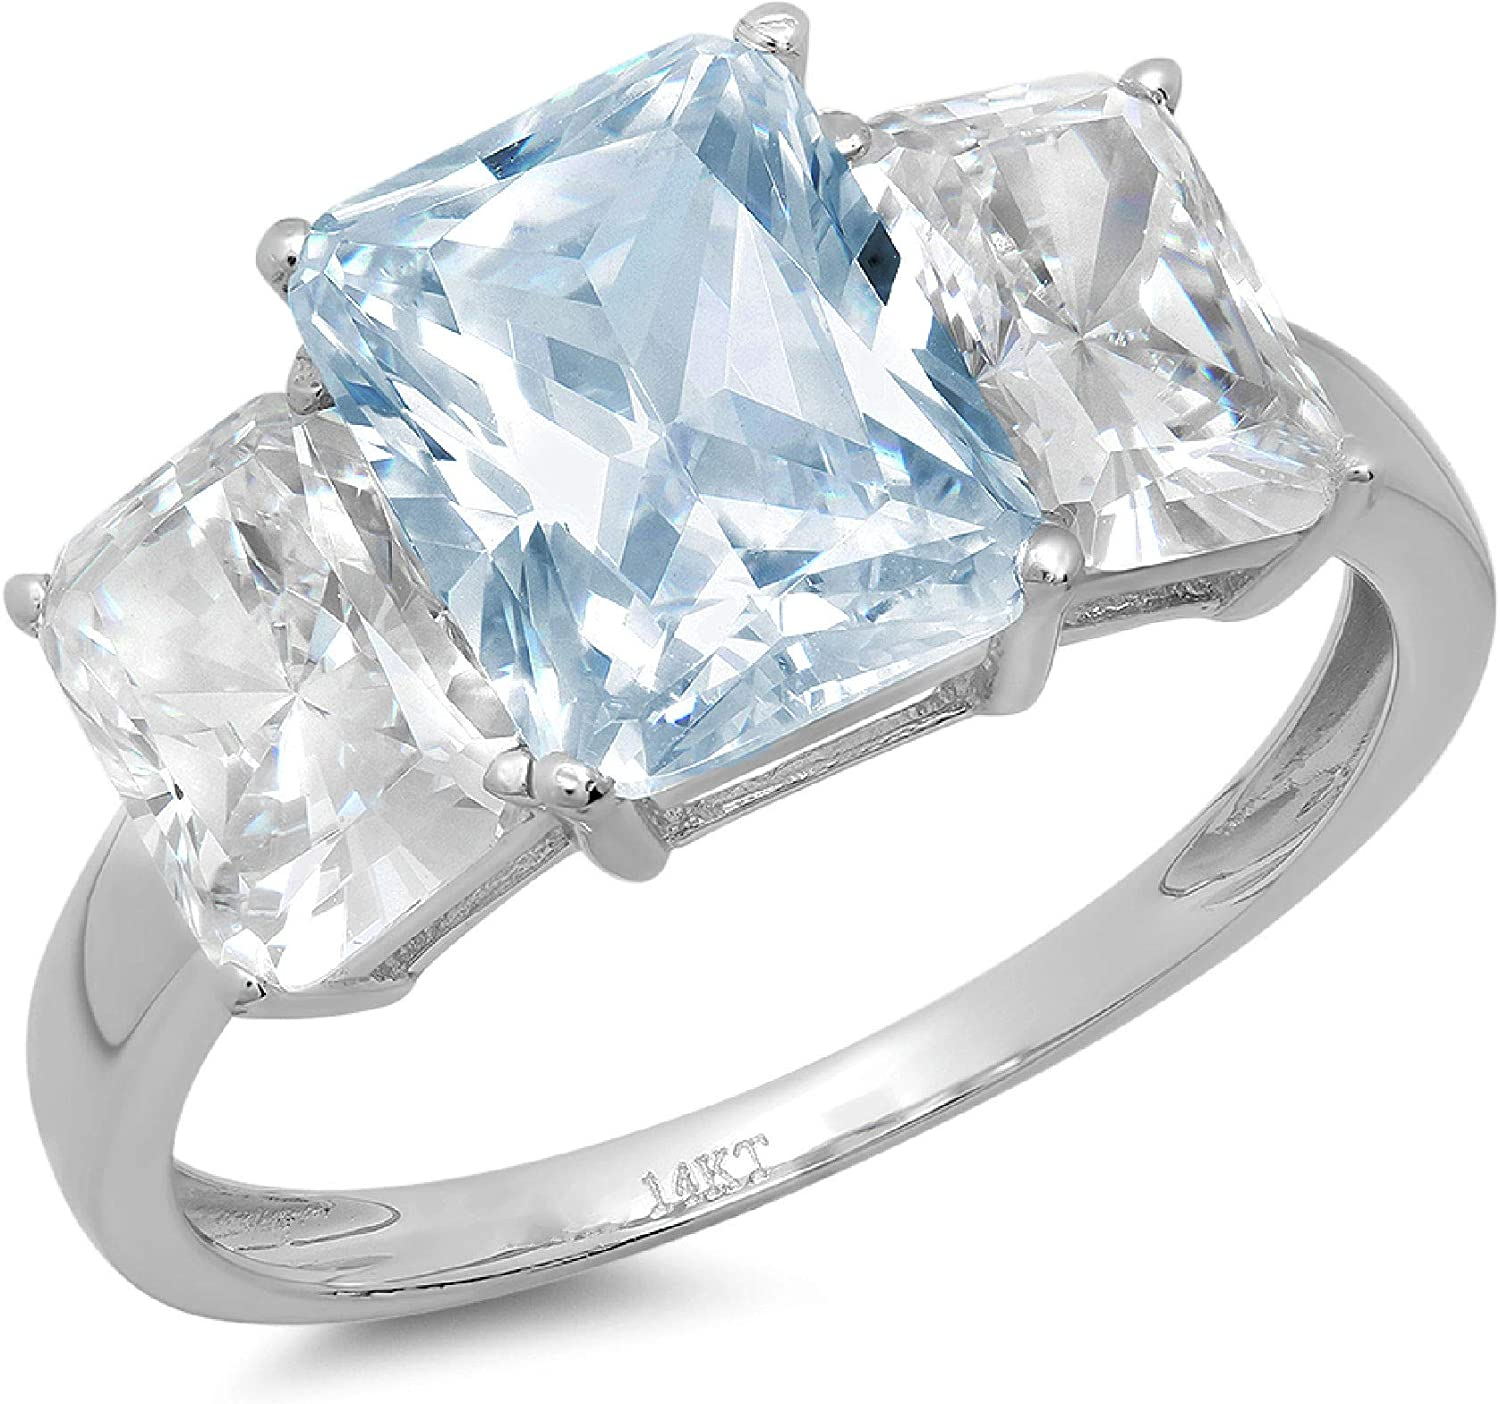 4.0 ct Brilliant Emerald Cut 3 Stone Solitaire Accent Genuine Flawless Natural Sky Blue Topaz Gemstone Engagement Promise Statement Anniversary Bridal Wedding Ring Solid 18K White Gold